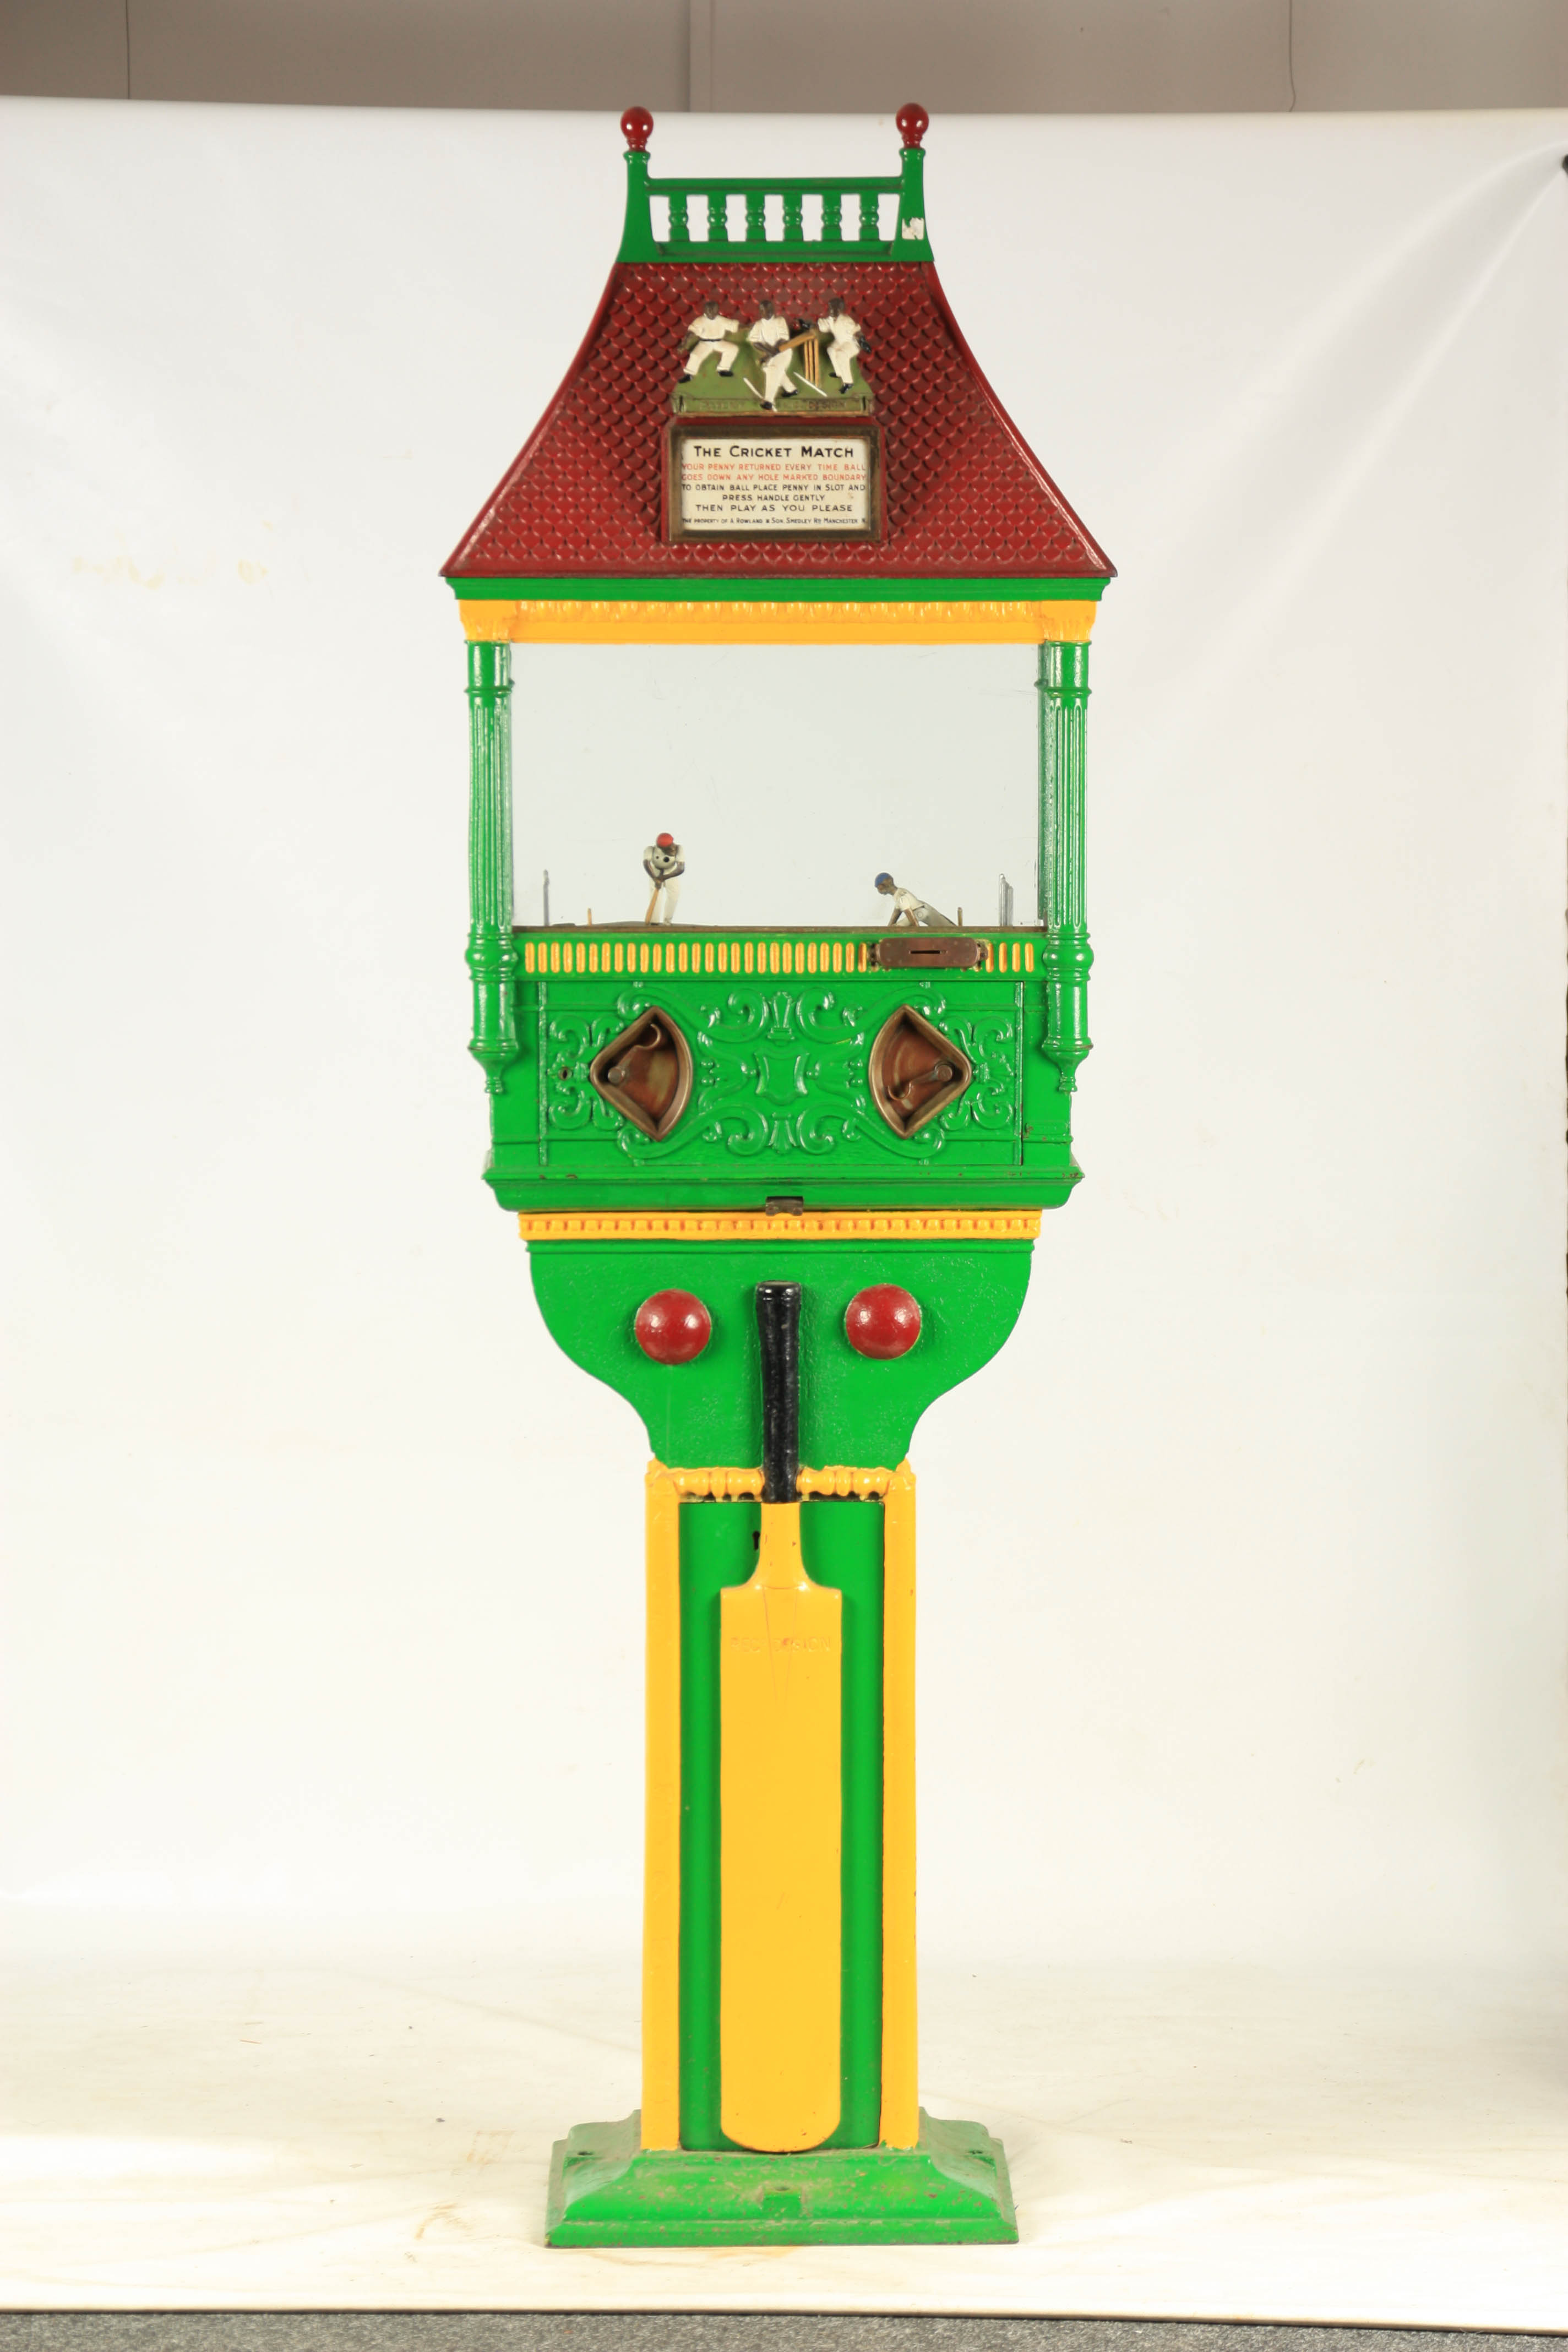 A LATE 19TH CENTURY PAINTED CAST IRON 'PENNY IN THE SLOT' CRICKET ARCADE MACHINE with tile effect - Image 4 of 14